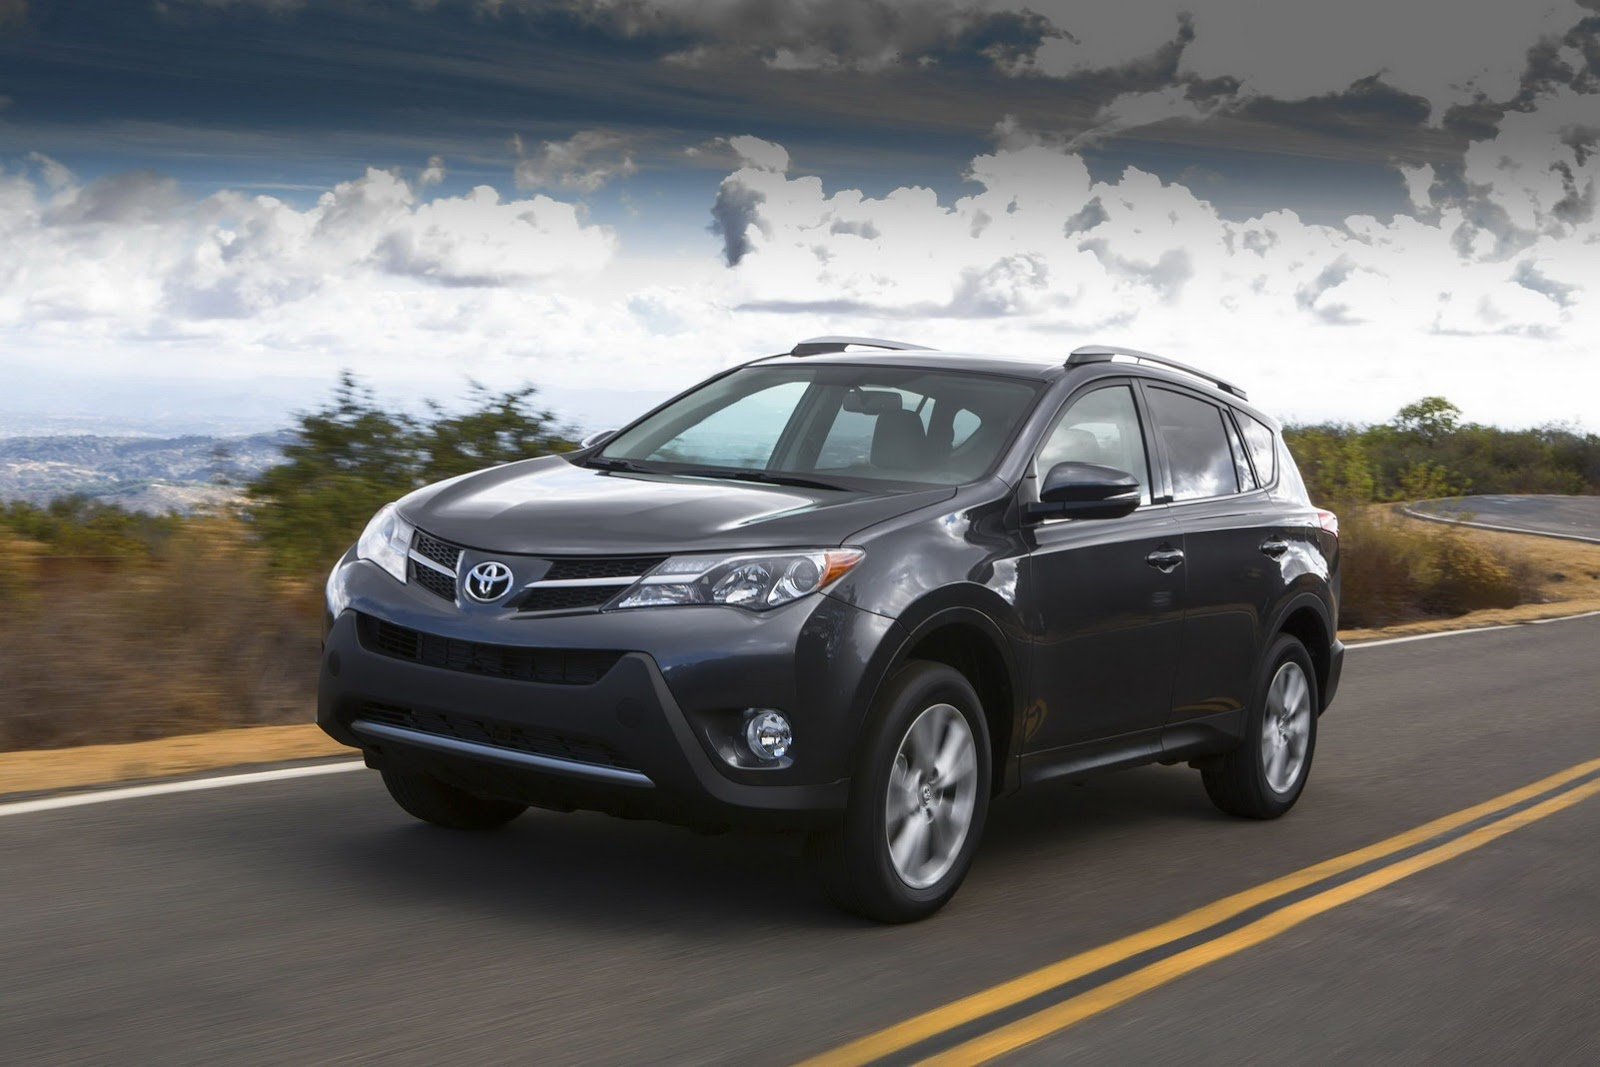 Toyota toyota rav 2013 : Most Wanted Cars: Toyota RAV4 2013